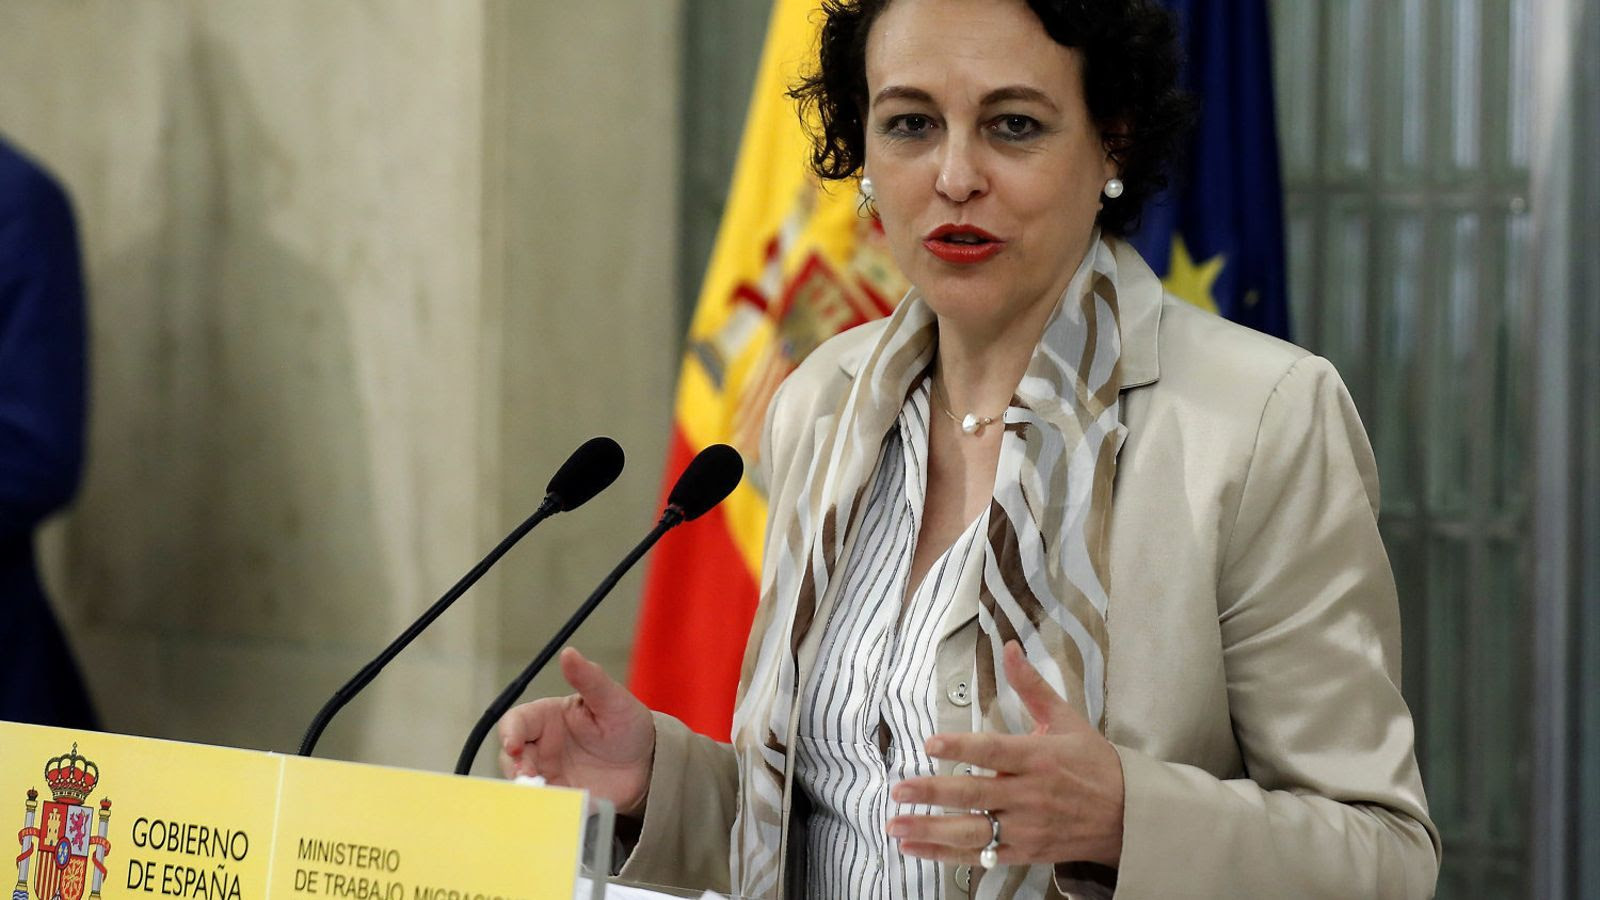 The Catalan Government and the unions pressurize the PSOE to reverse the labor reform